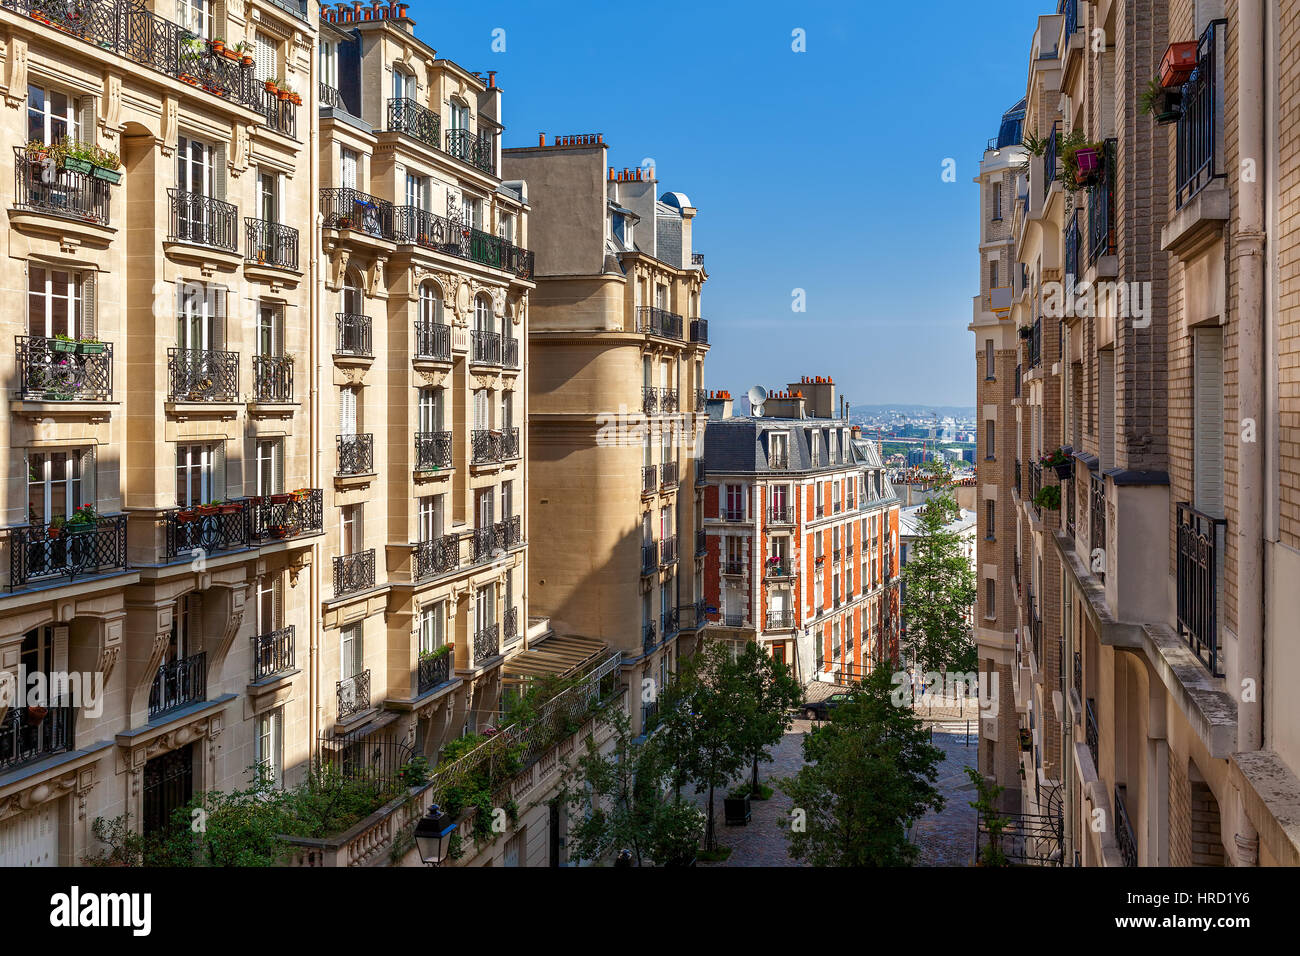 View of residential buildings on Montmartre in Paris, France. - Stock Image